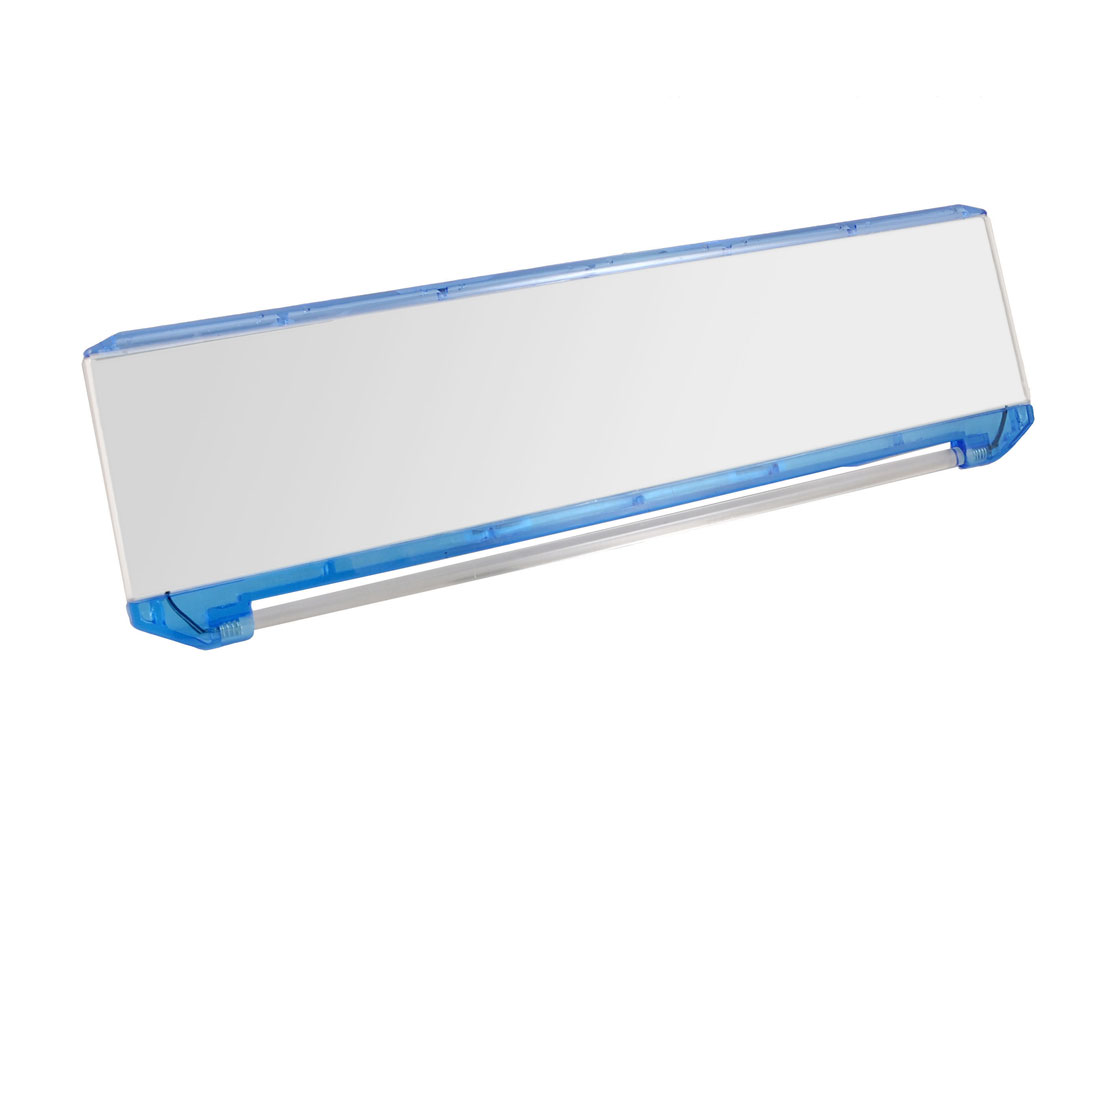 Blue LED Bar Wide 300mm Car Interior Curved Rear View Mirror